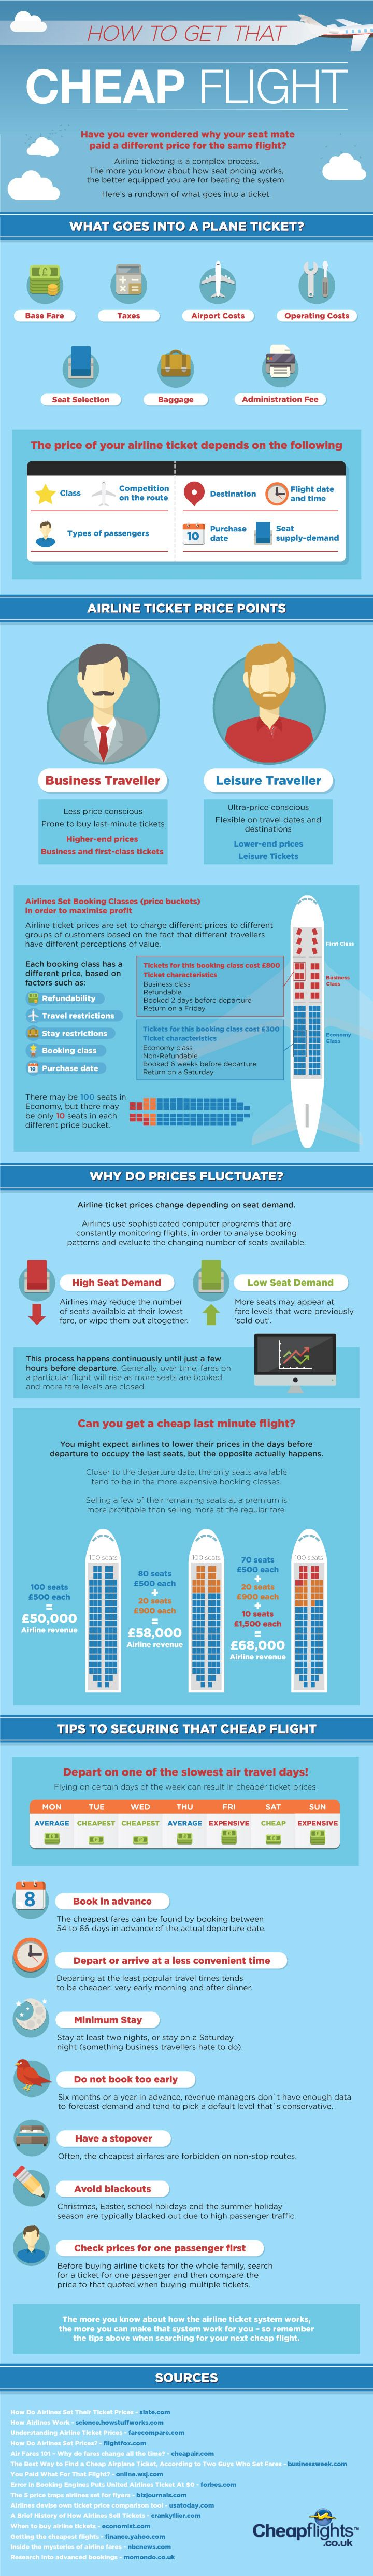 How to get a cheap flight [infographic] | The Career Break Site